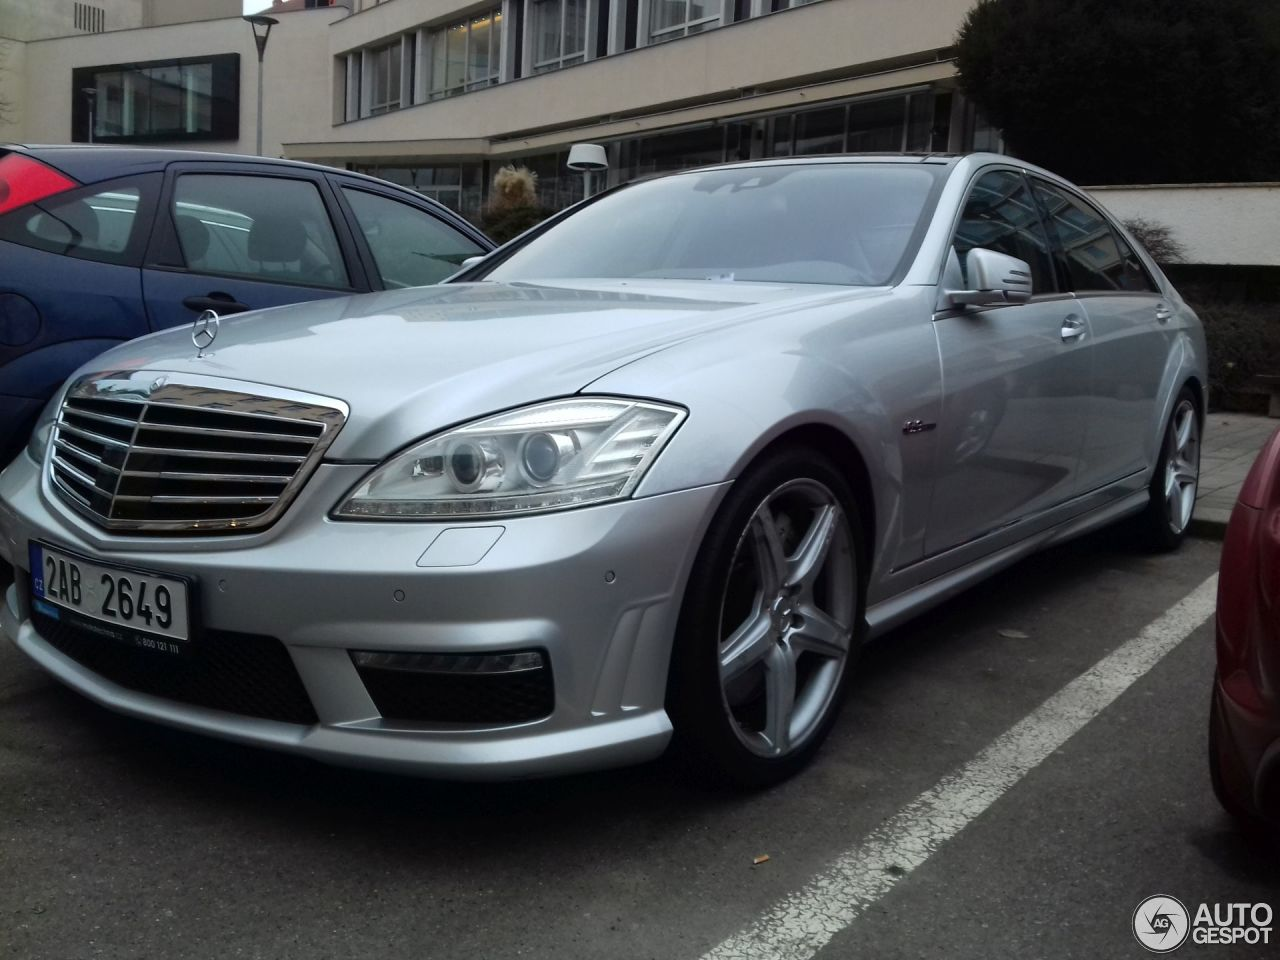 Mercedes benz s 63 amg w221 2010 30 january 2018 for Mercedes benz s63 amg 2010